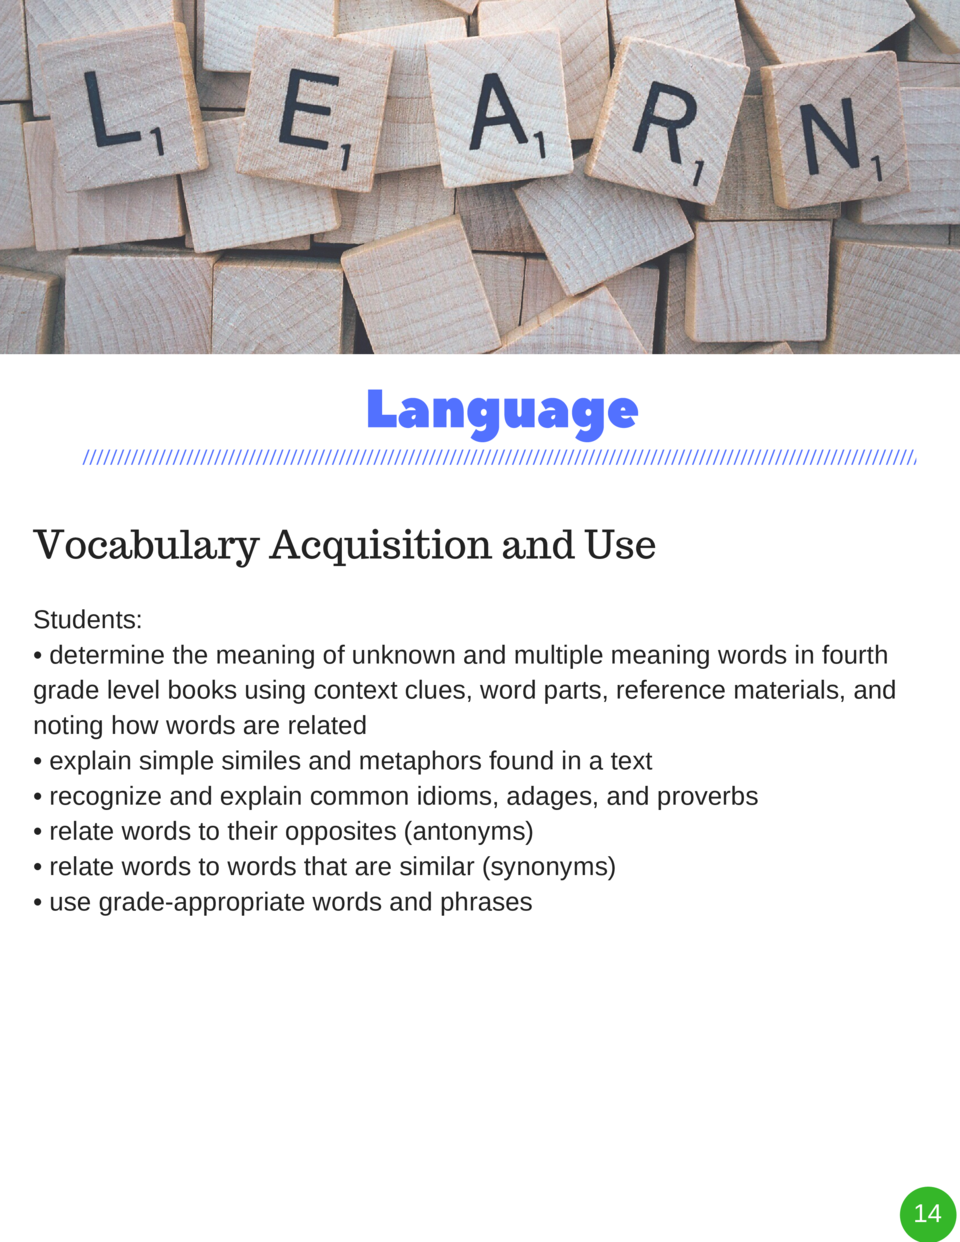 Language Vocabulary Acquisition and Use Students      determine the meaning of unknown and multiple meaning words in fourt...